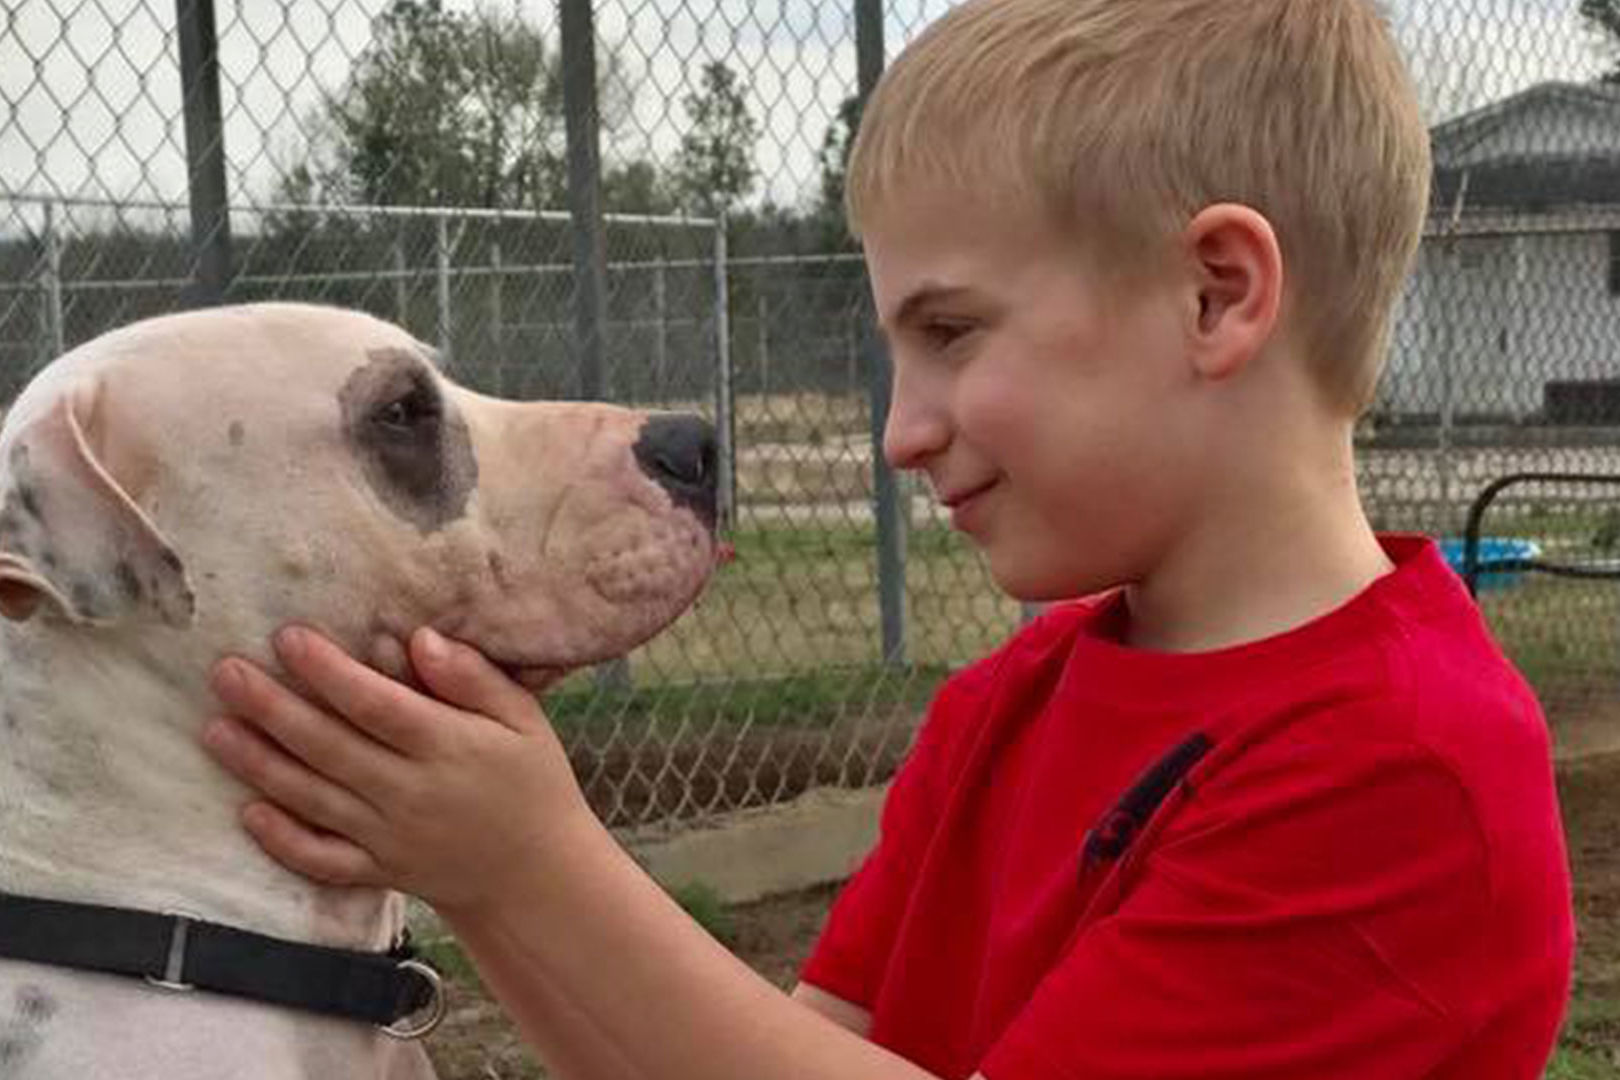 WATCH: 7-Year-Old Boy Has Helped Rescue More Than 1,400 Dogs from Southern Kill Shelters